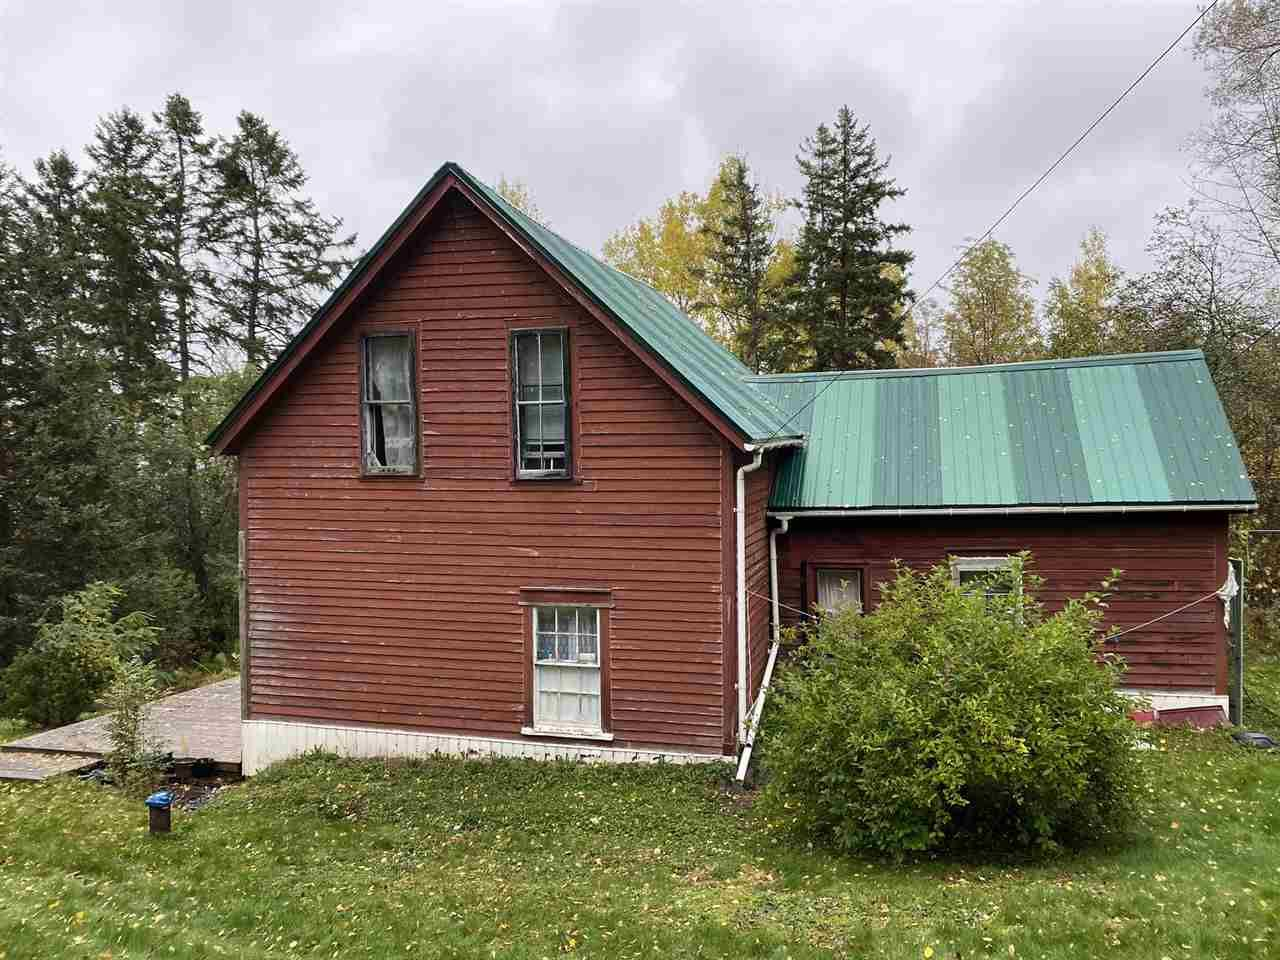 Main Photo: 331 Lower Road in Pictou Landing: 108-Rural Pictou County Residential for sale (Northern Region)  : MLS®# 202022551